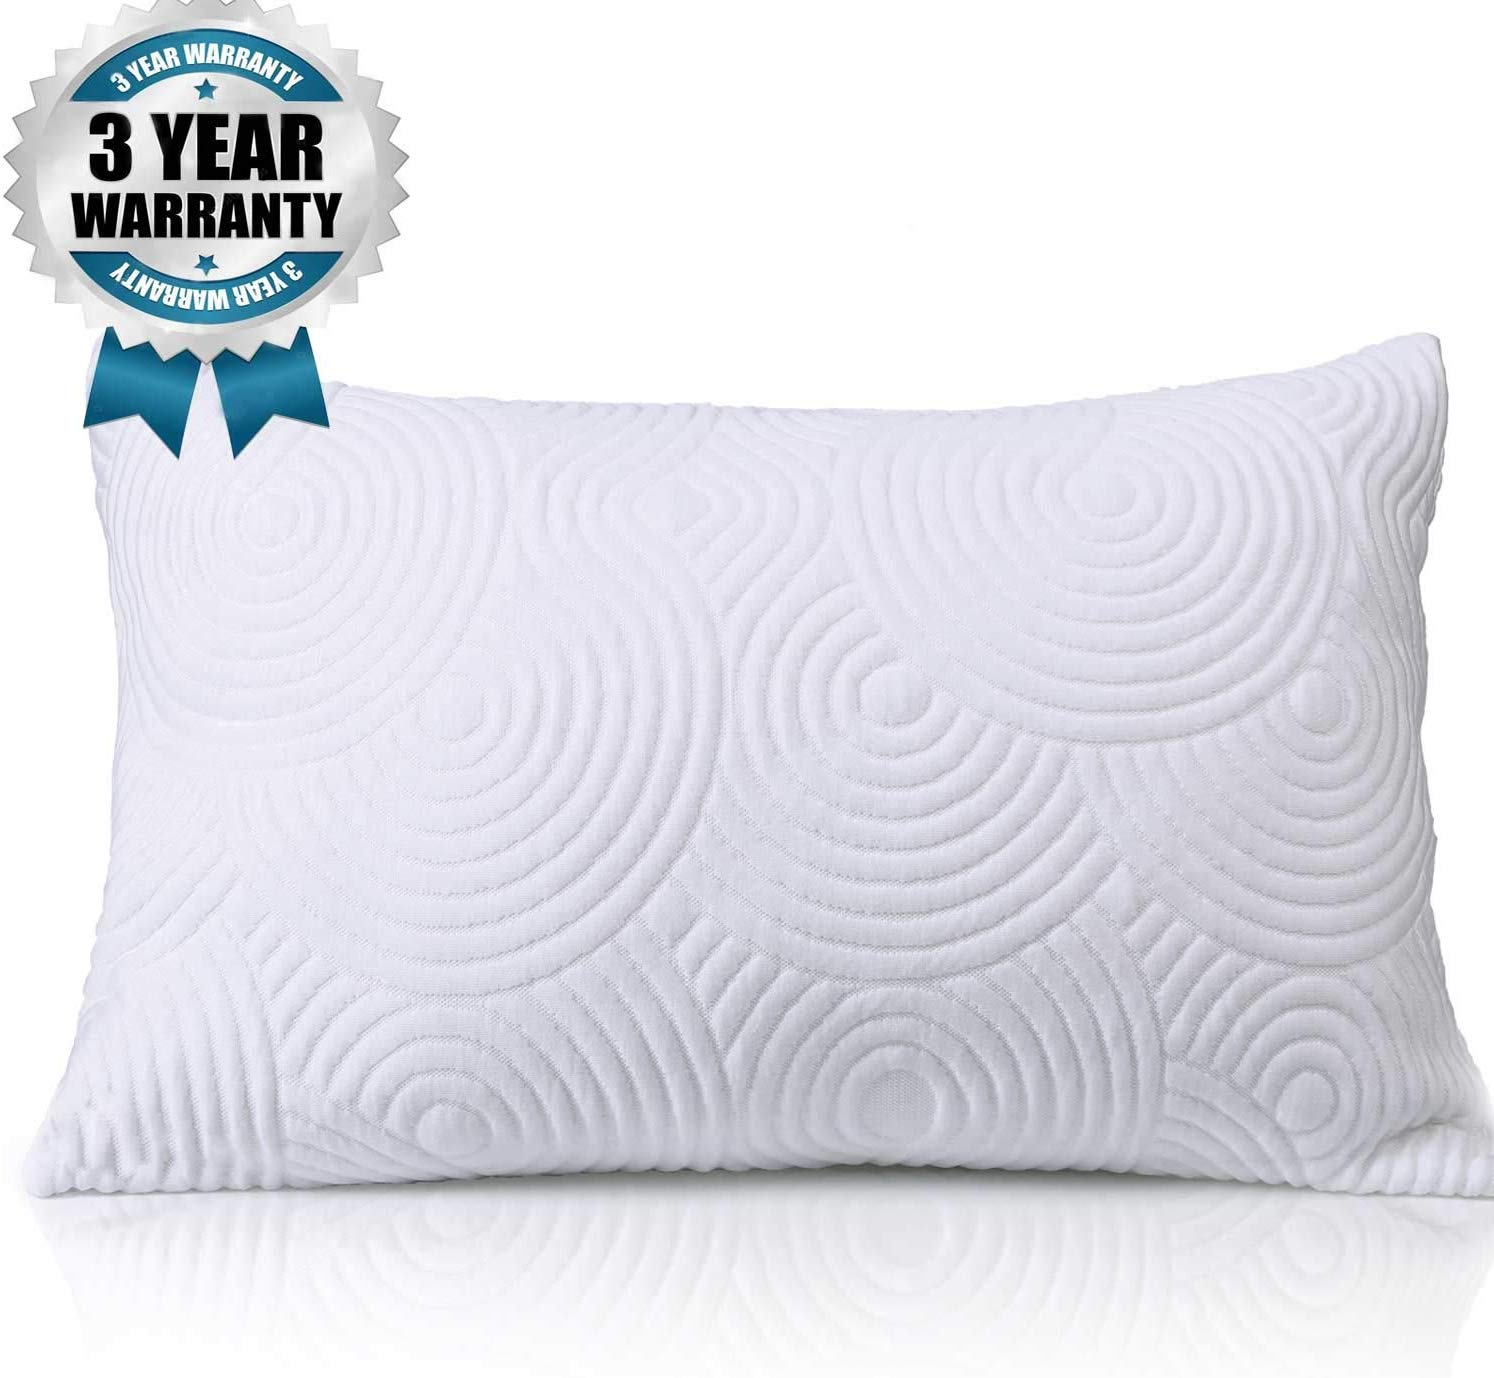 Homentality shredded memory foam pillow review and buying guide by www.dailysleep.org